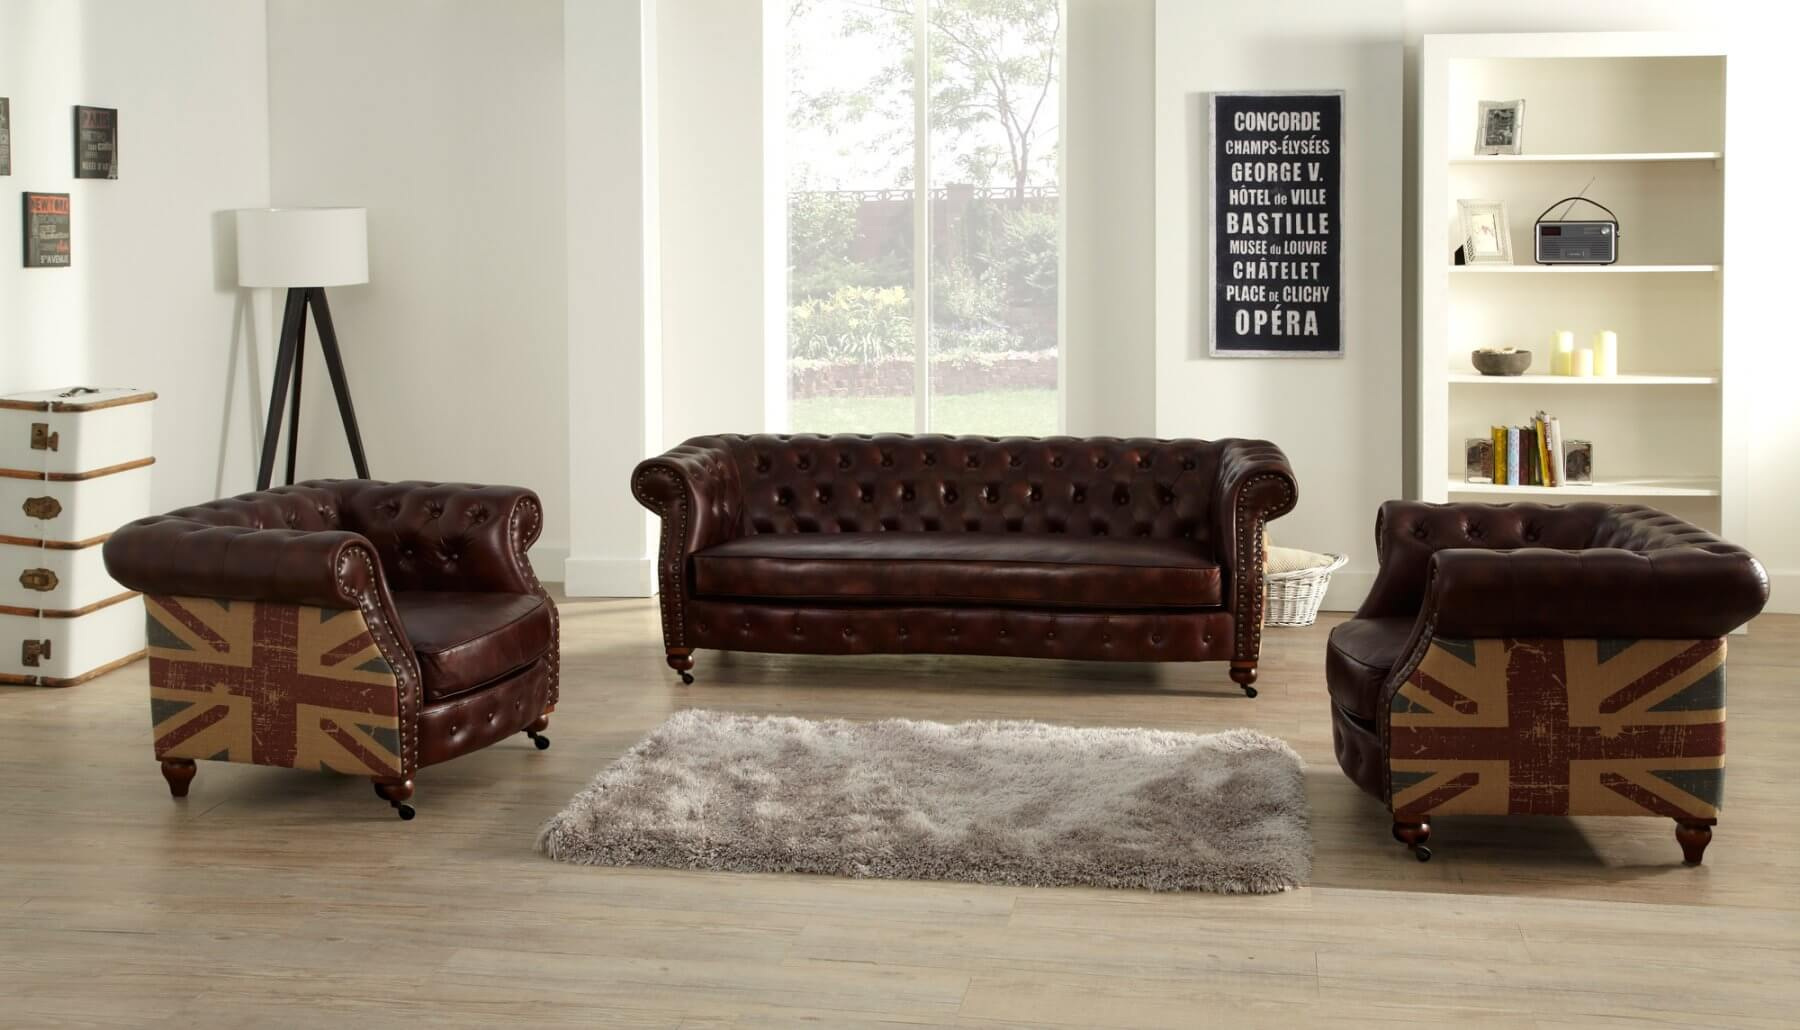 Leather Chesterfield Brown 3 + 1 + 1 Union Sofa Suite With Faded Flag